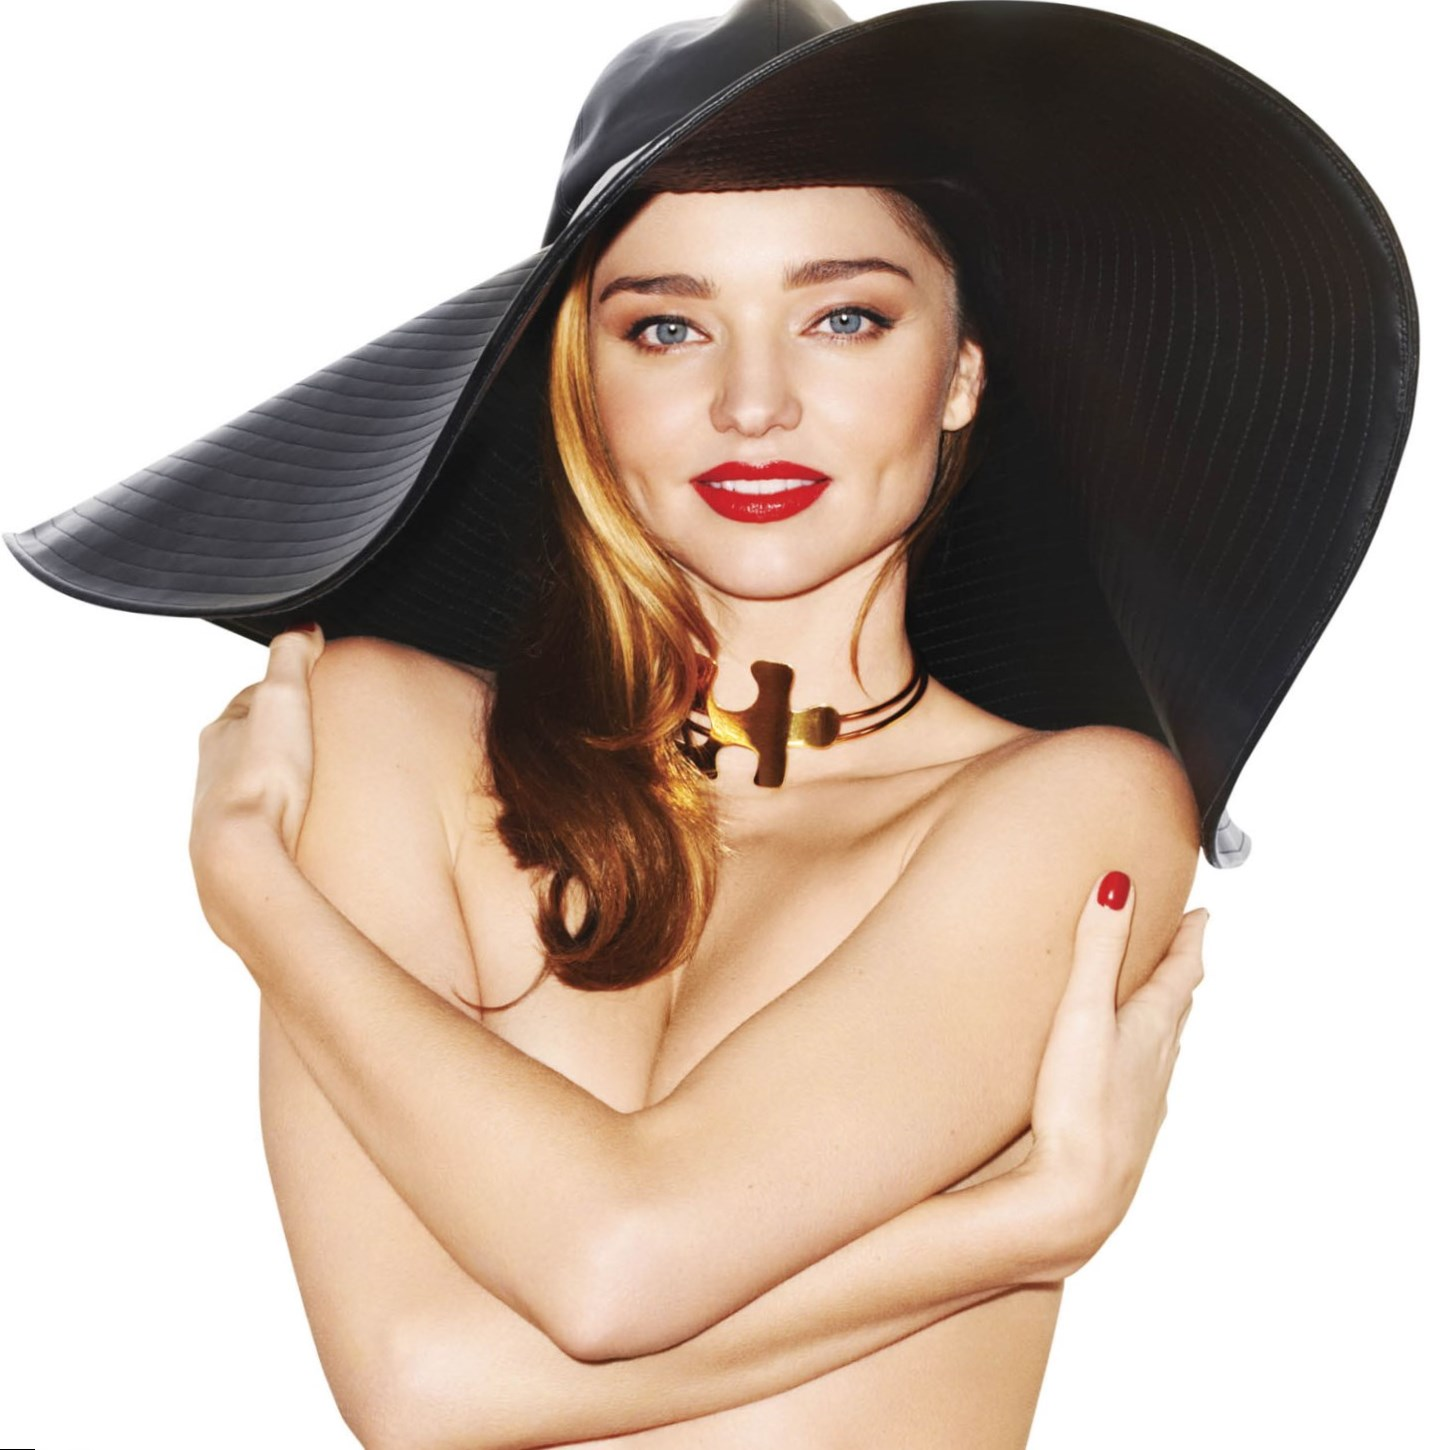 Miranda Kerr weight, height and age. We know it all! миранда керр рост